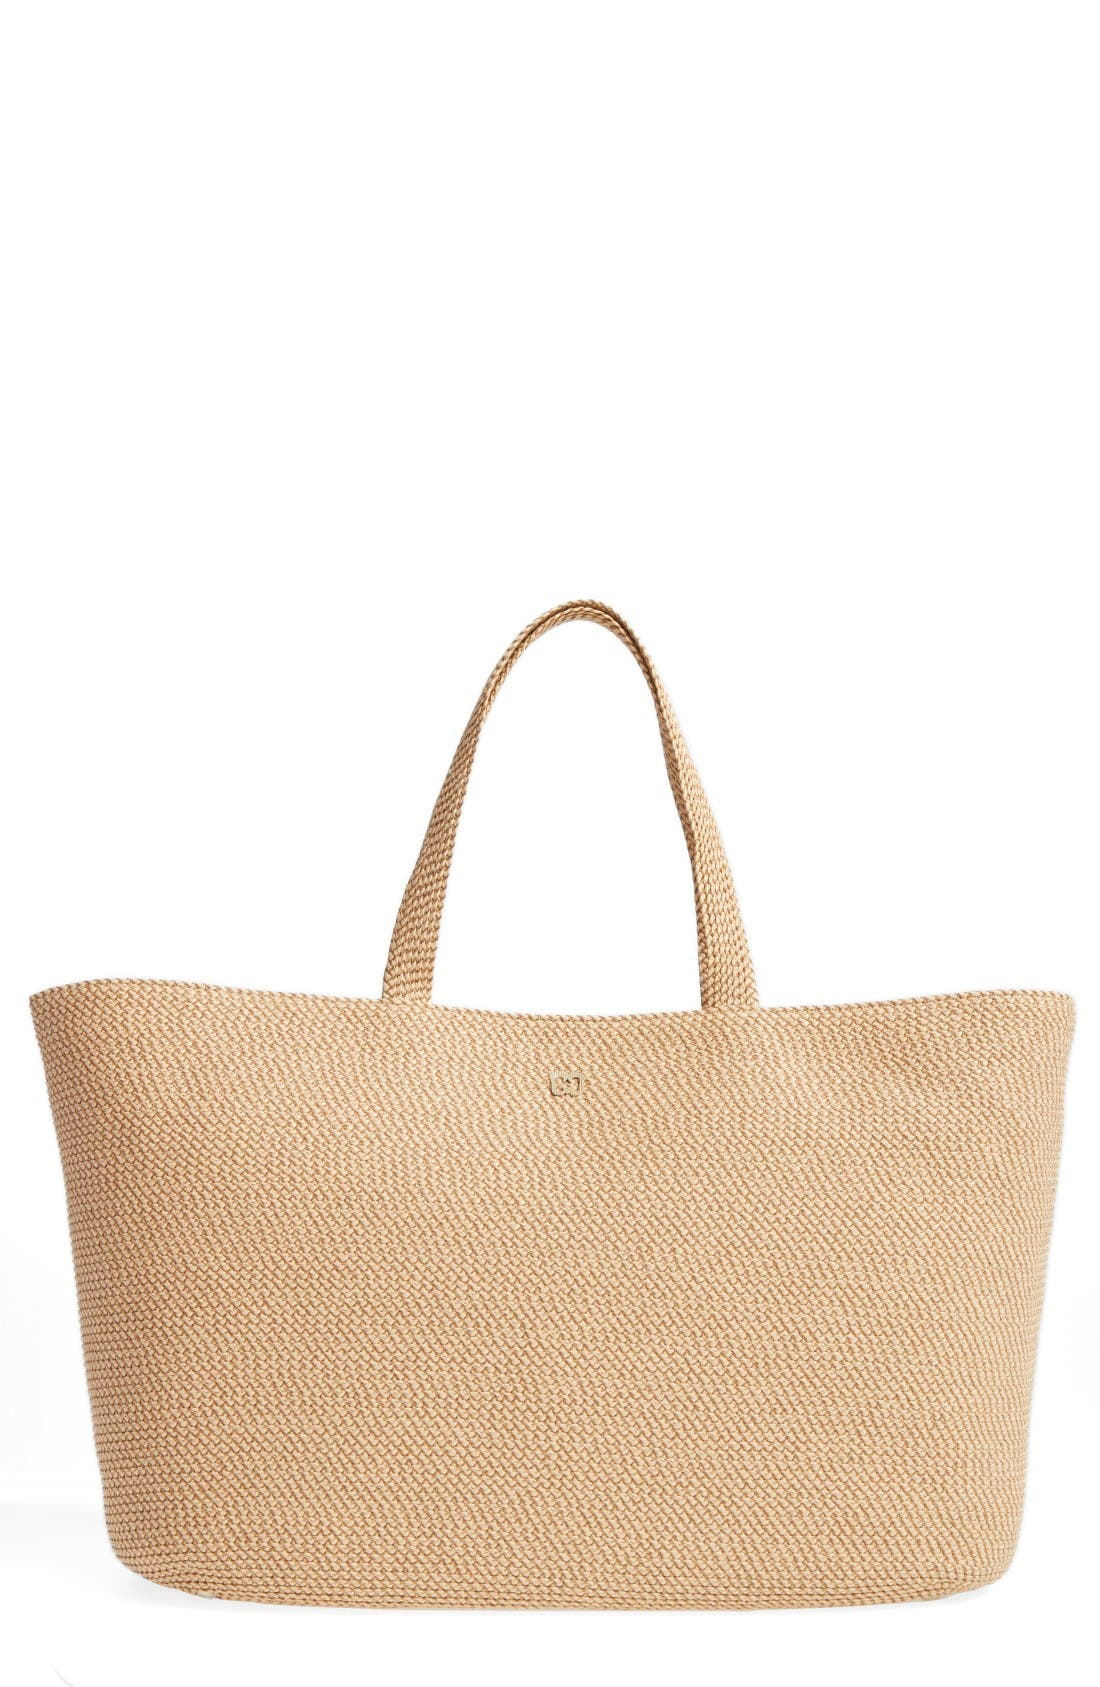 'Sinclair' Squishee<sup>®</sup> Tote,                         Main,                         color, Peanut